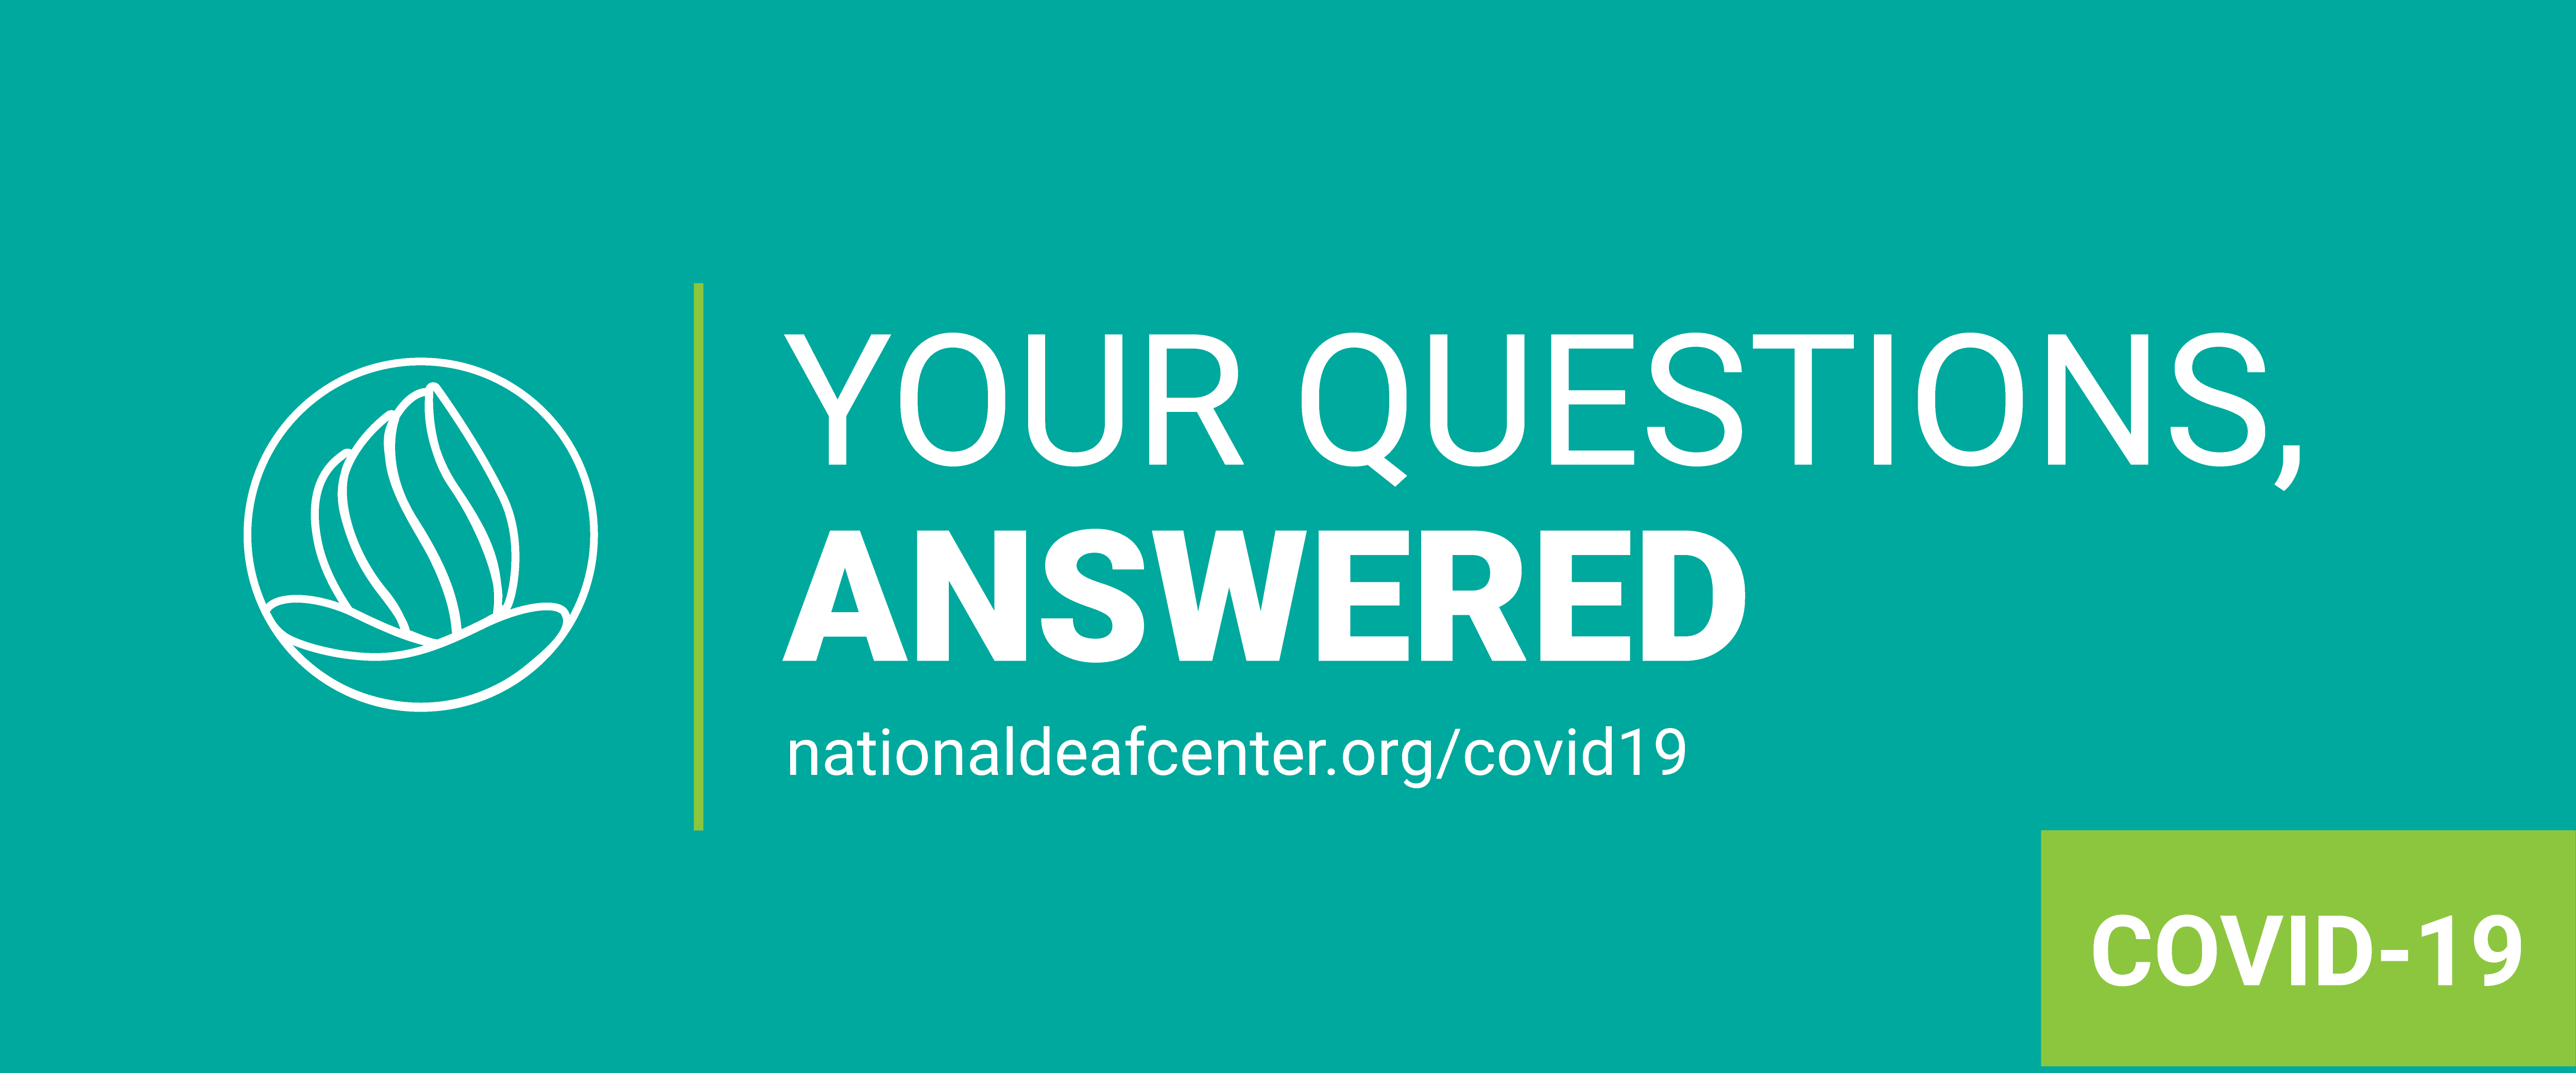 "Teal background with NDC logo on left and ""Your Questions, Answered. nationaldeafcenter/covid19"" on the right. In the bottom right corner is a green box with the text ""COVID-19"""